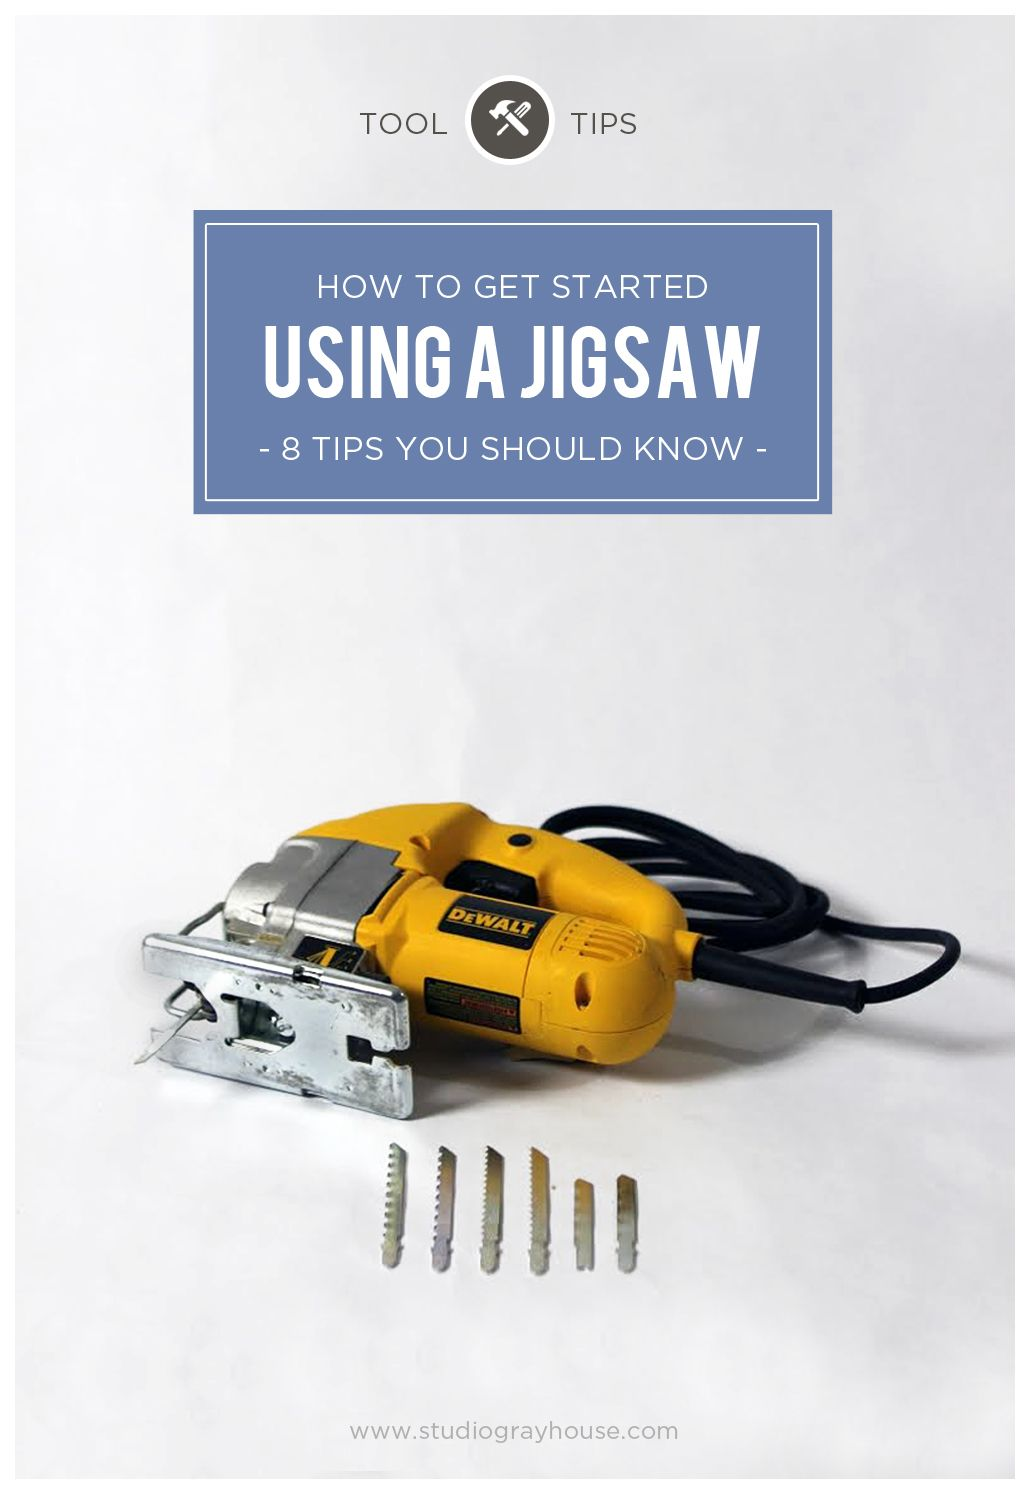 How To Use A Jigsaw Projects Woodworking